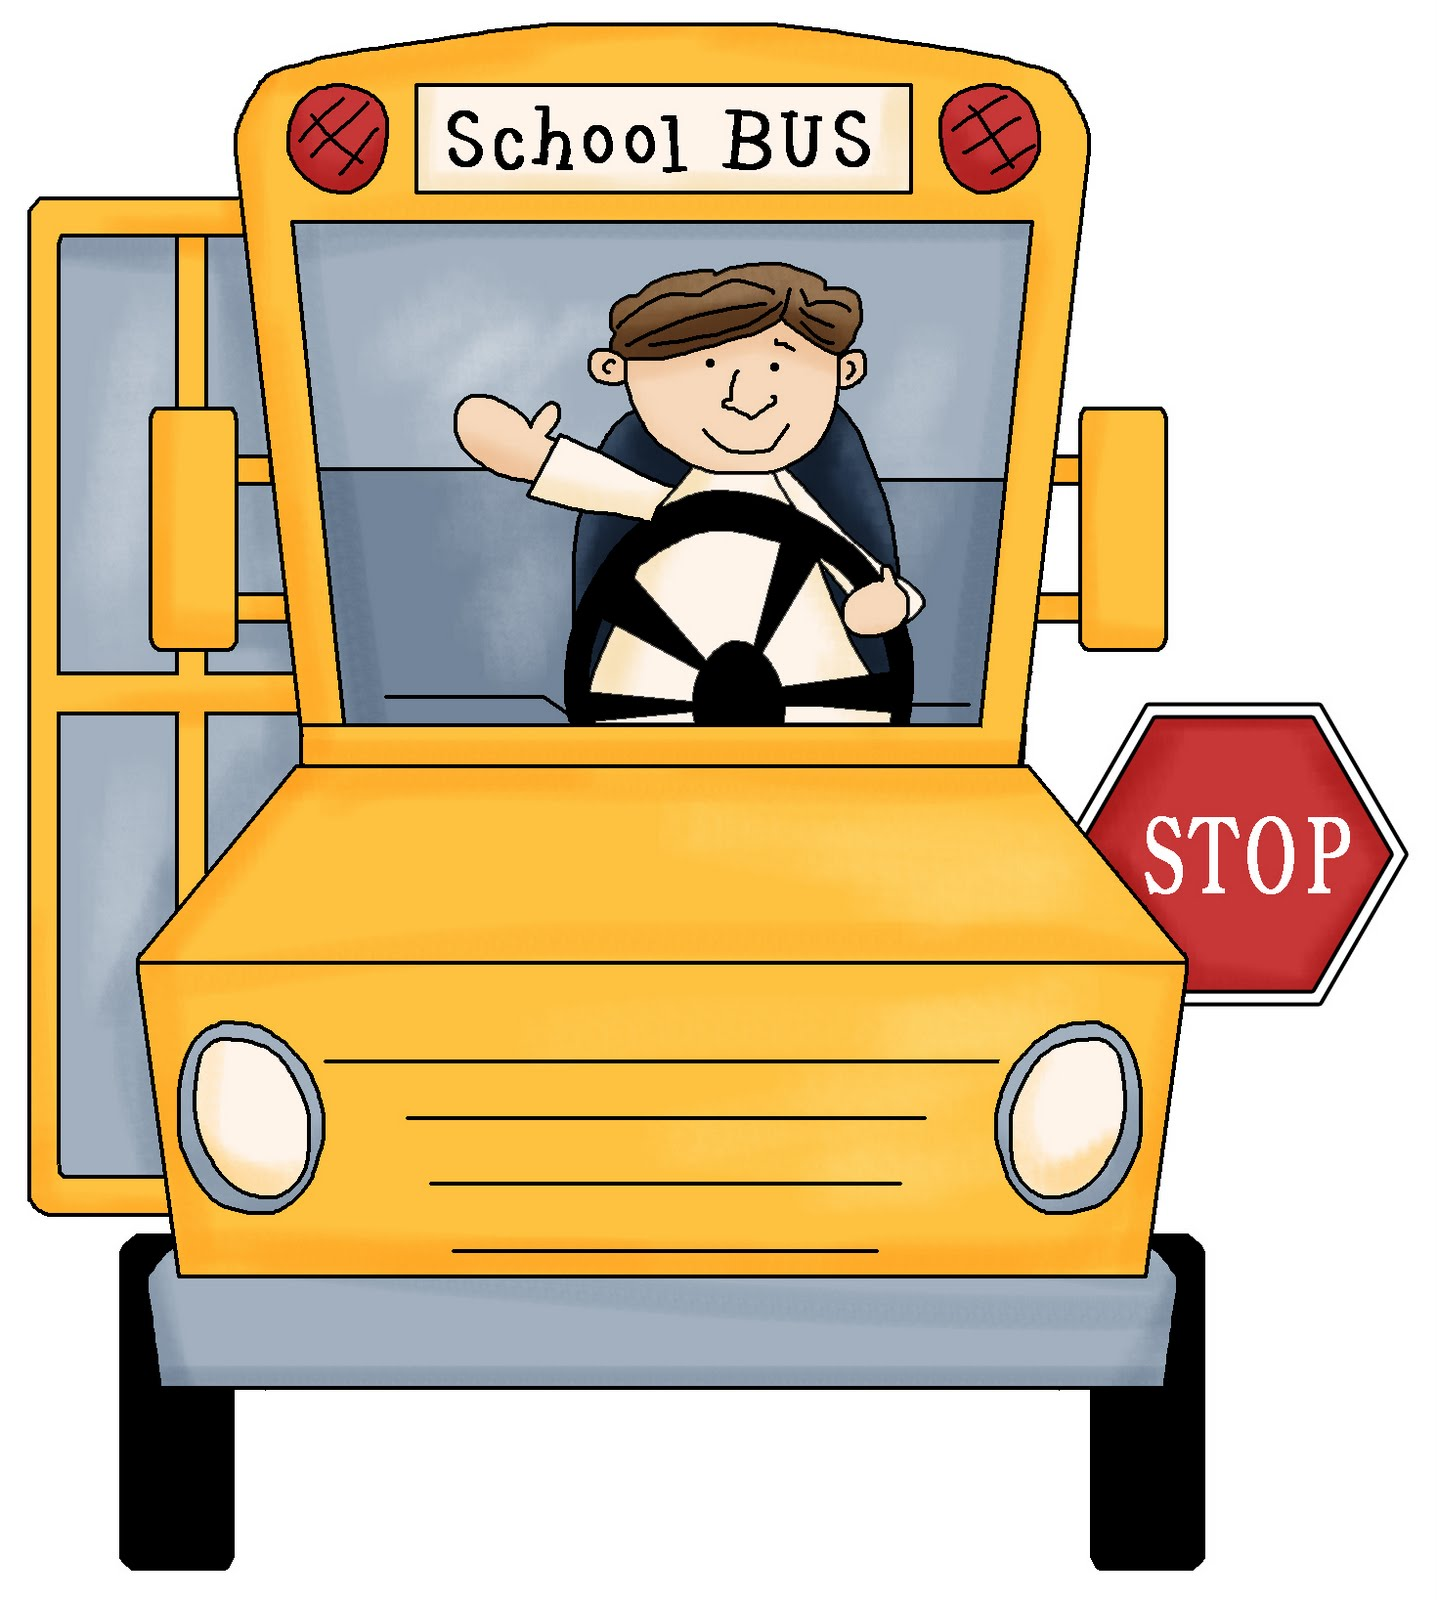 Indian clipart bus driver School Image Bus Driver Cute